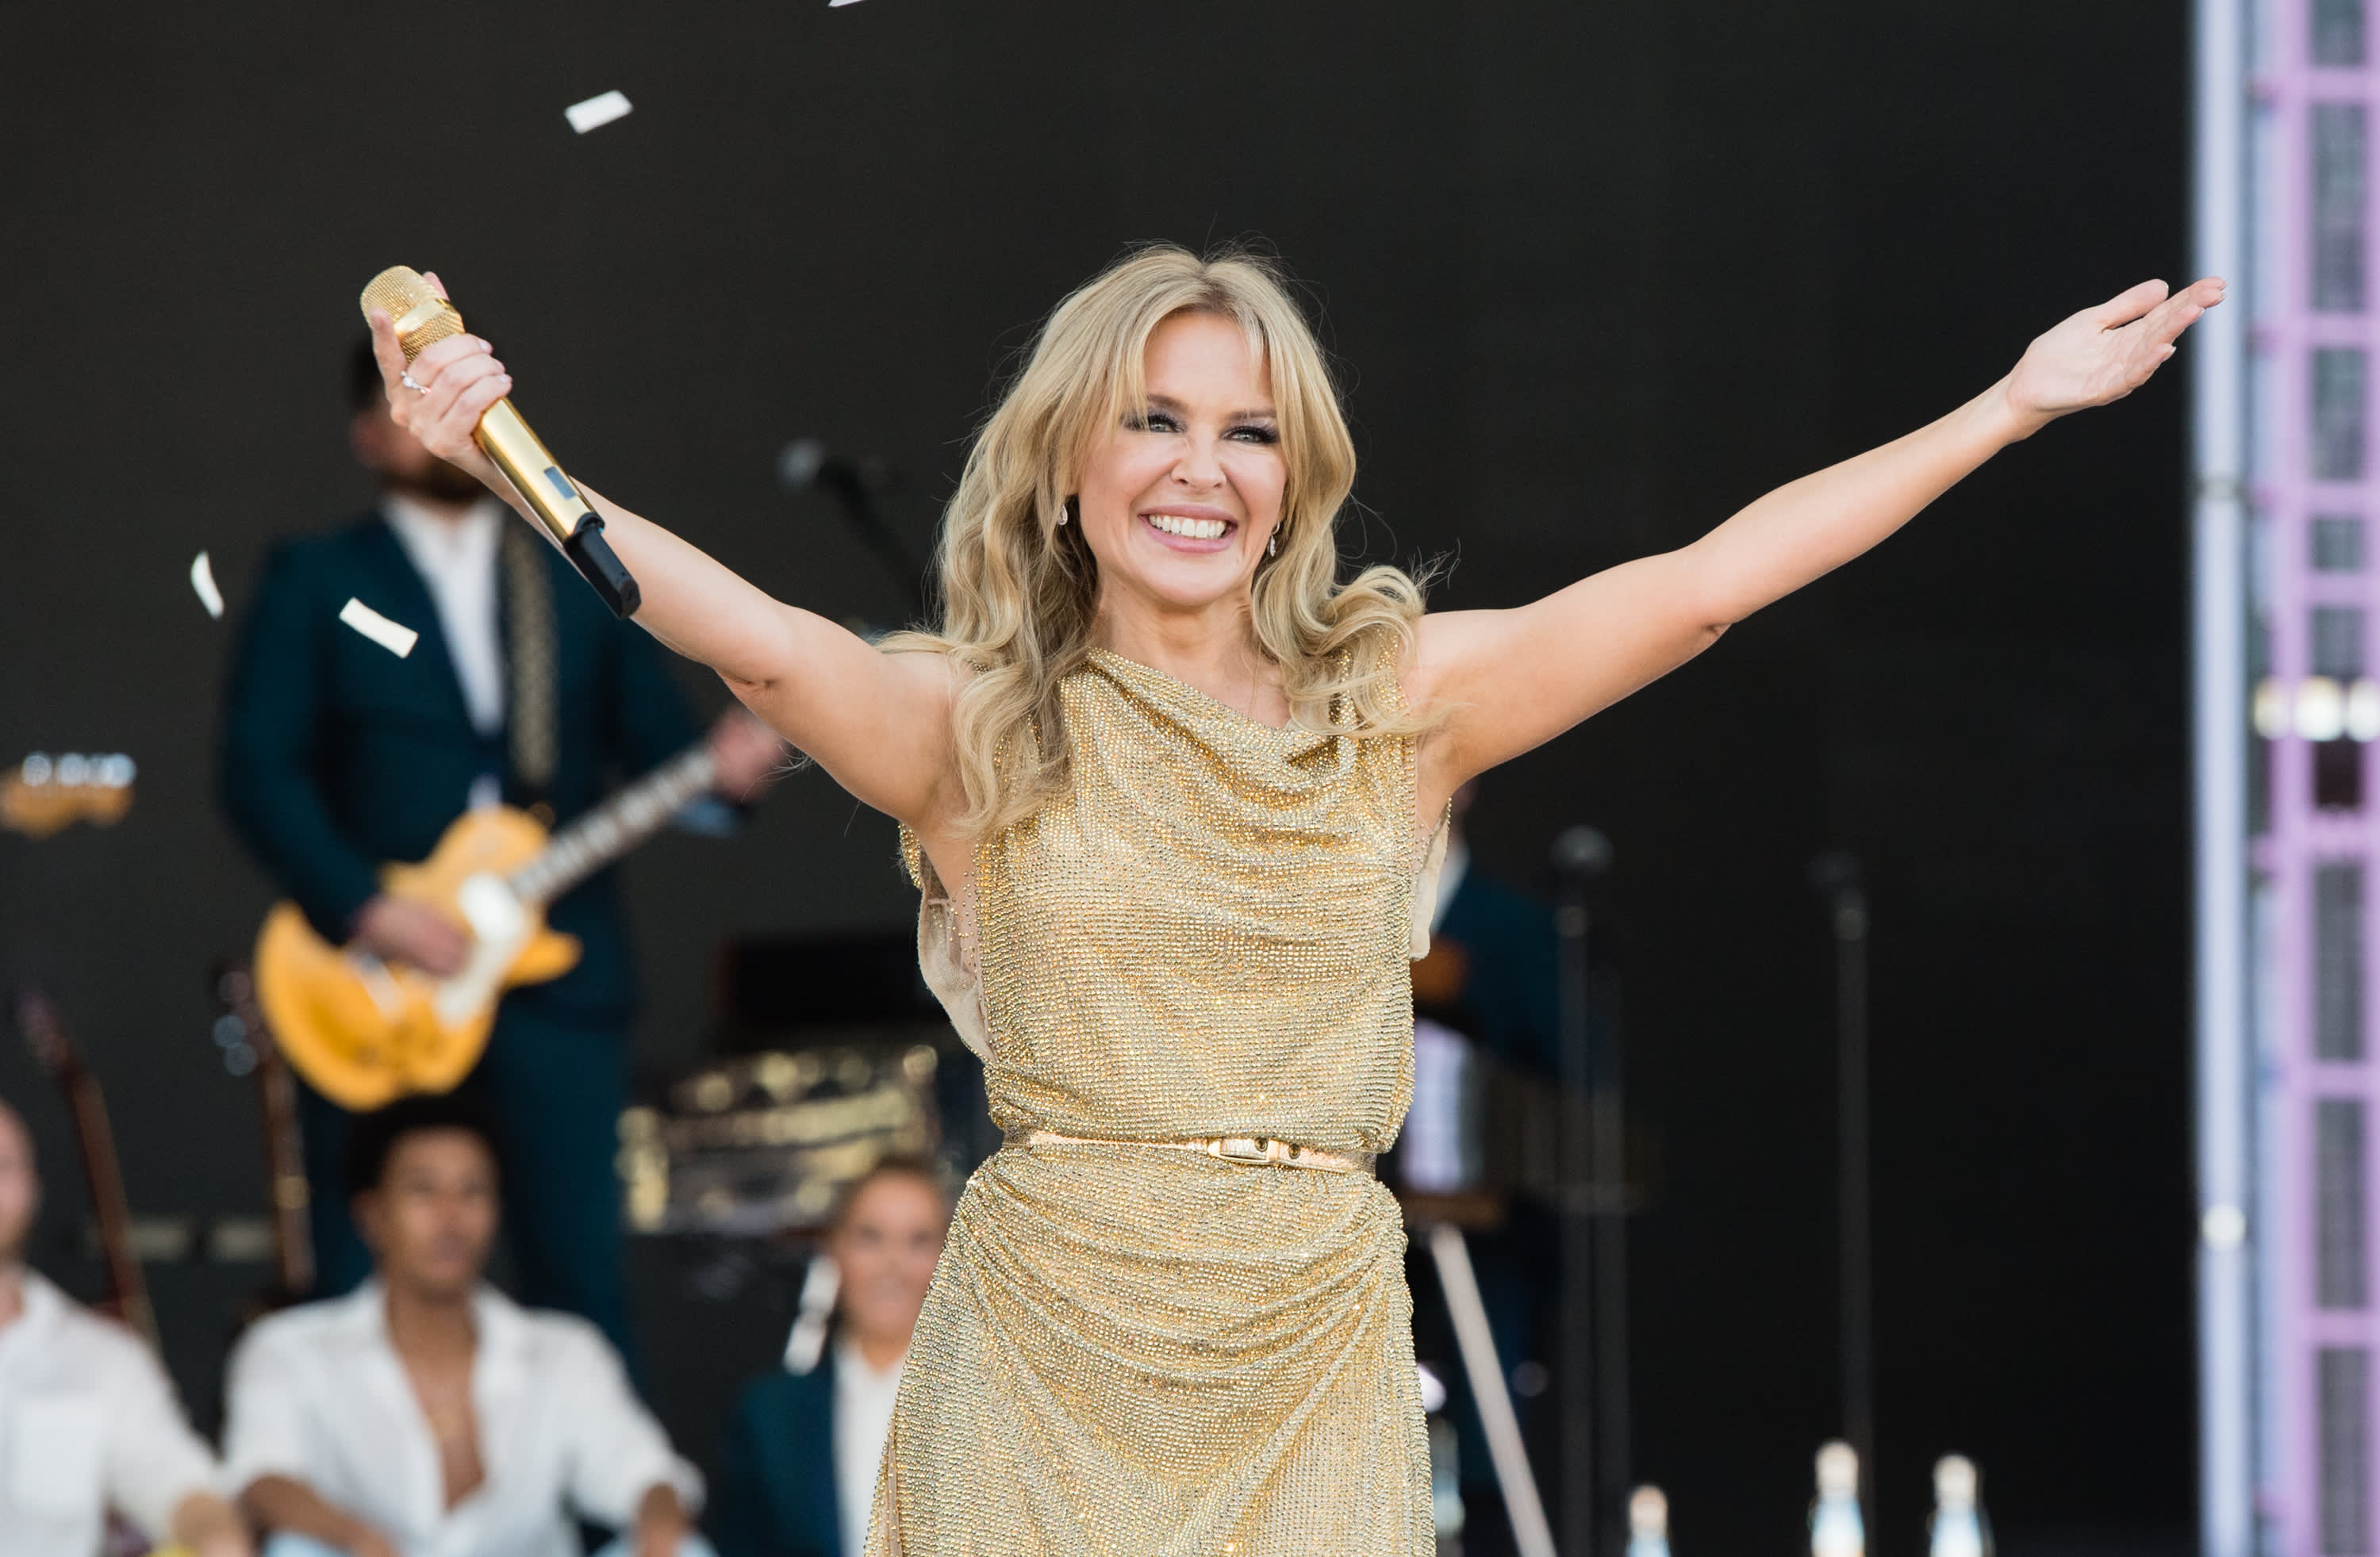 'There's no shortcut to learning a craft,' Grammy-winning singer Kylie Minogue says